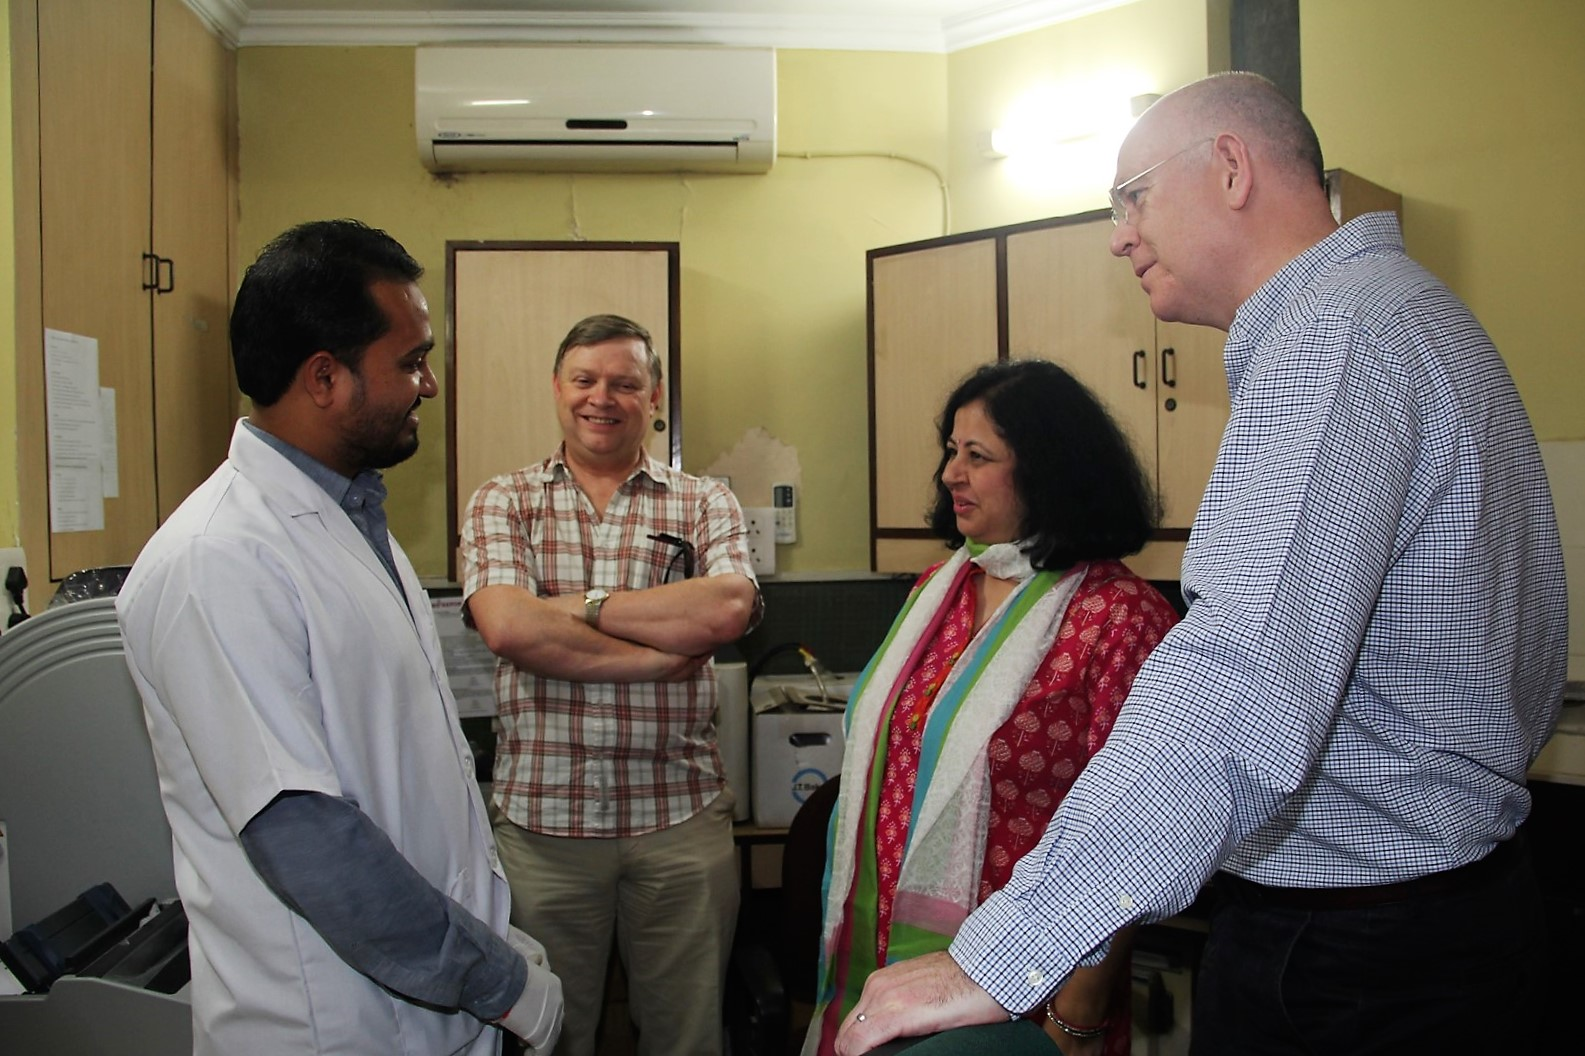 Colin and Stephen interacting with the Asha Polyclinic team.